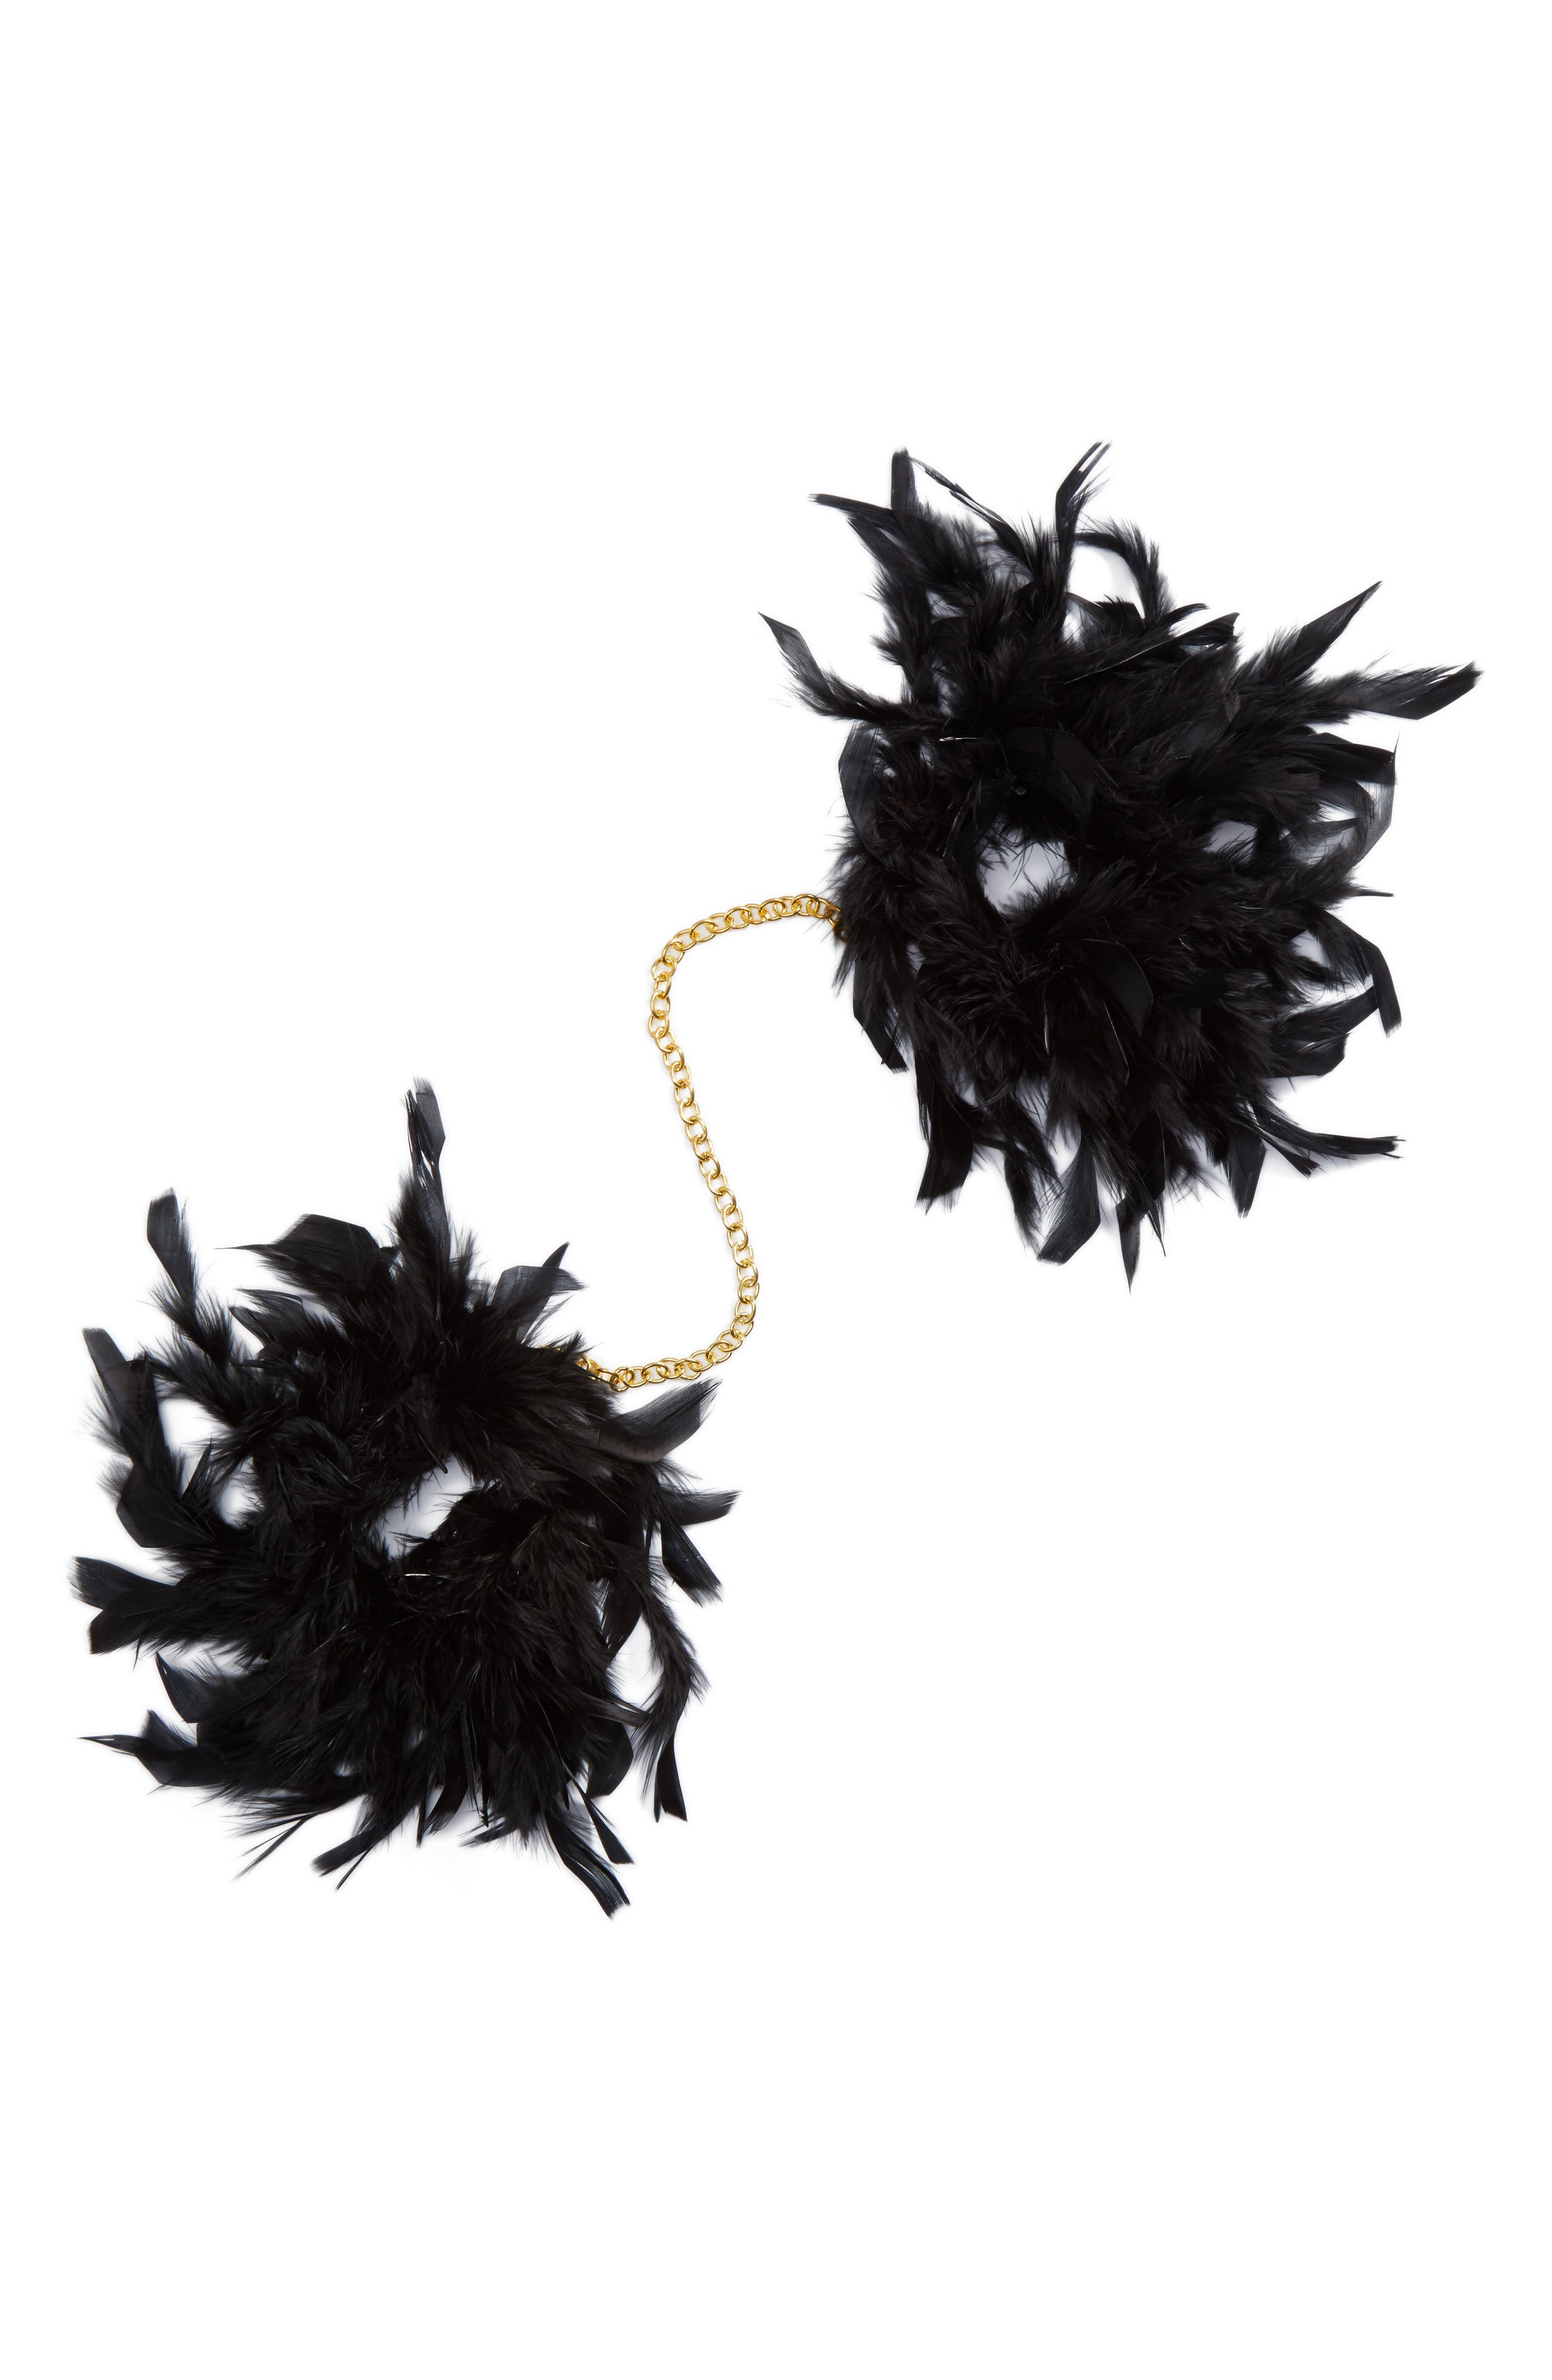 Feather Faux Handcuffs,                         Main,                         color, Black